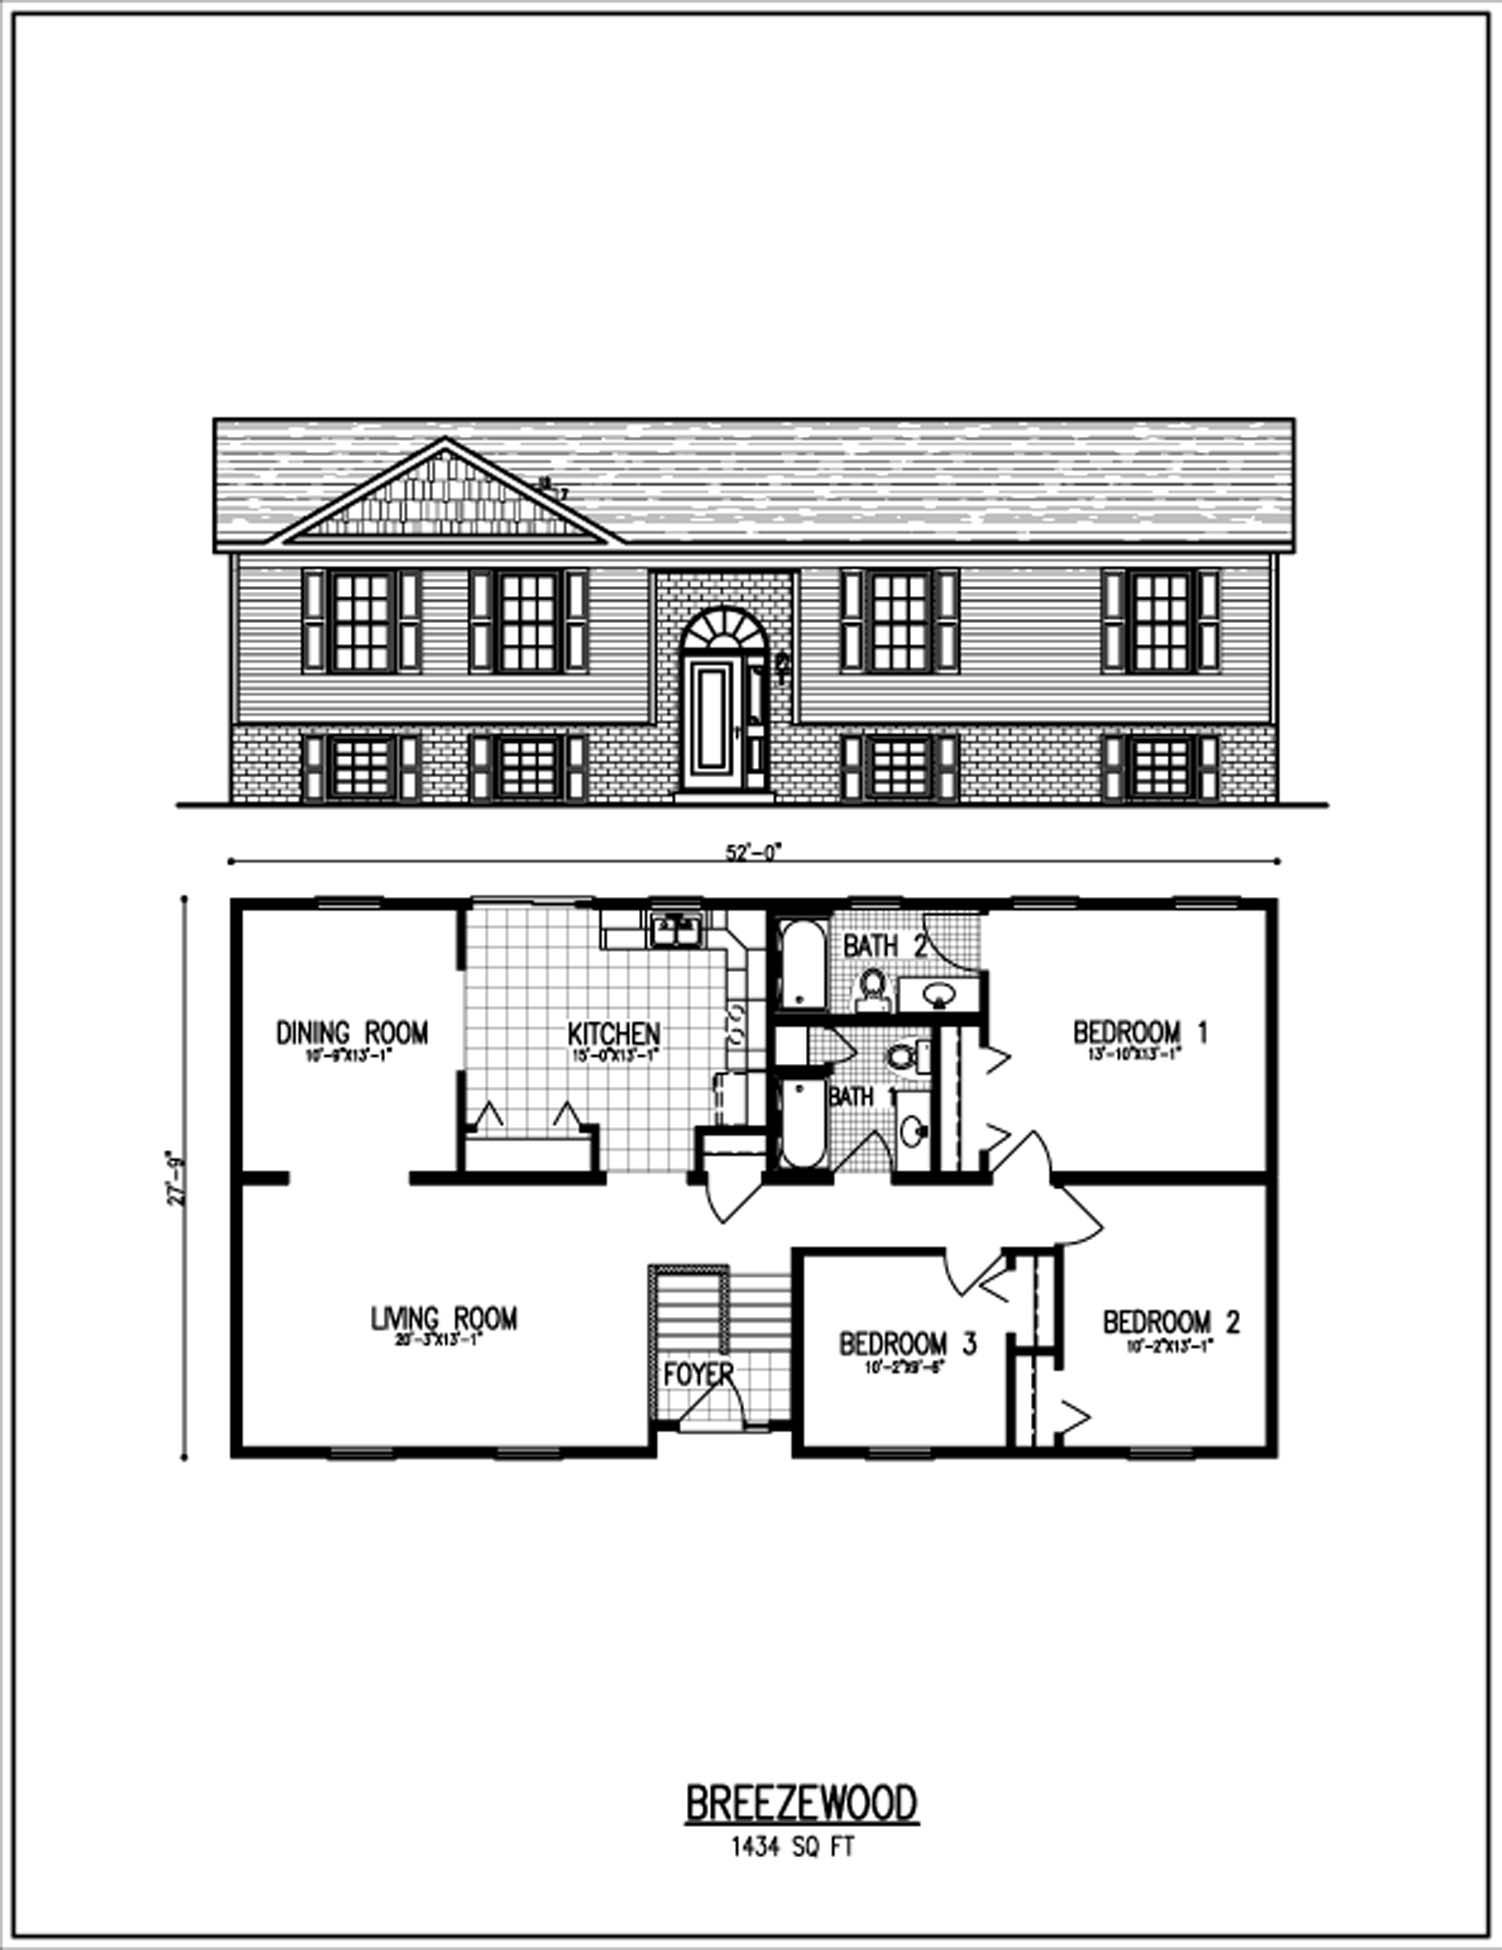 raised ranch house plans Google Search New house – Raised Ranch House Plans With Garage